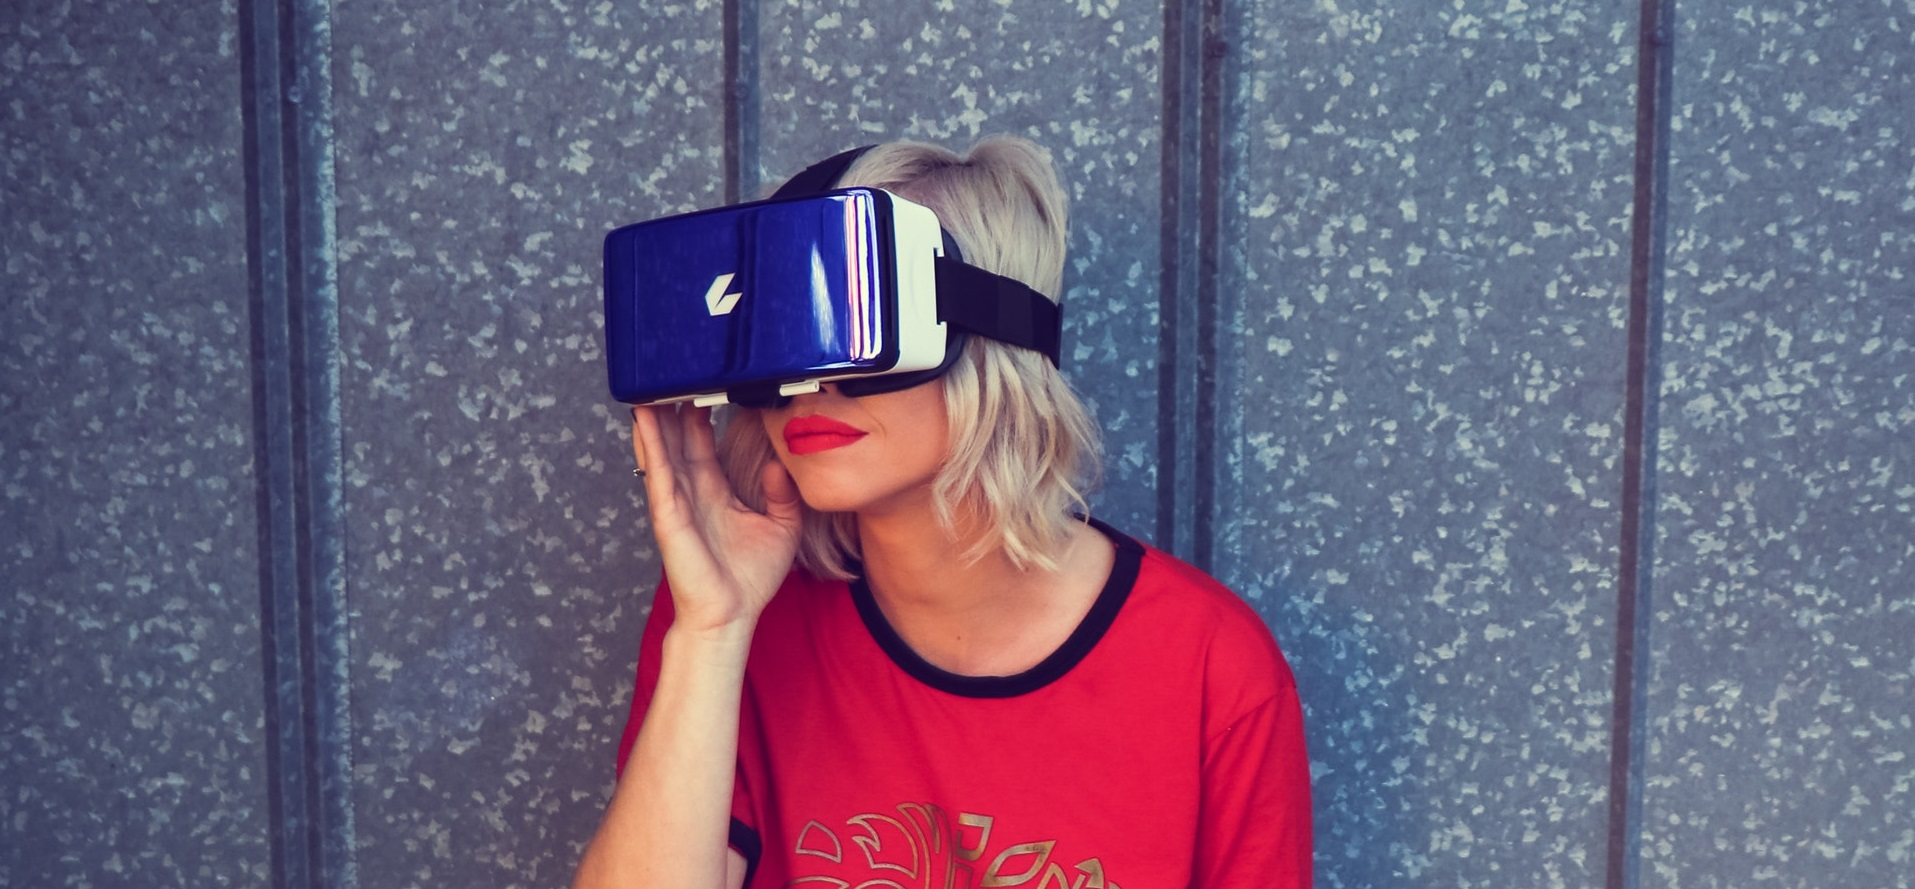 phones compatible with google cardboard